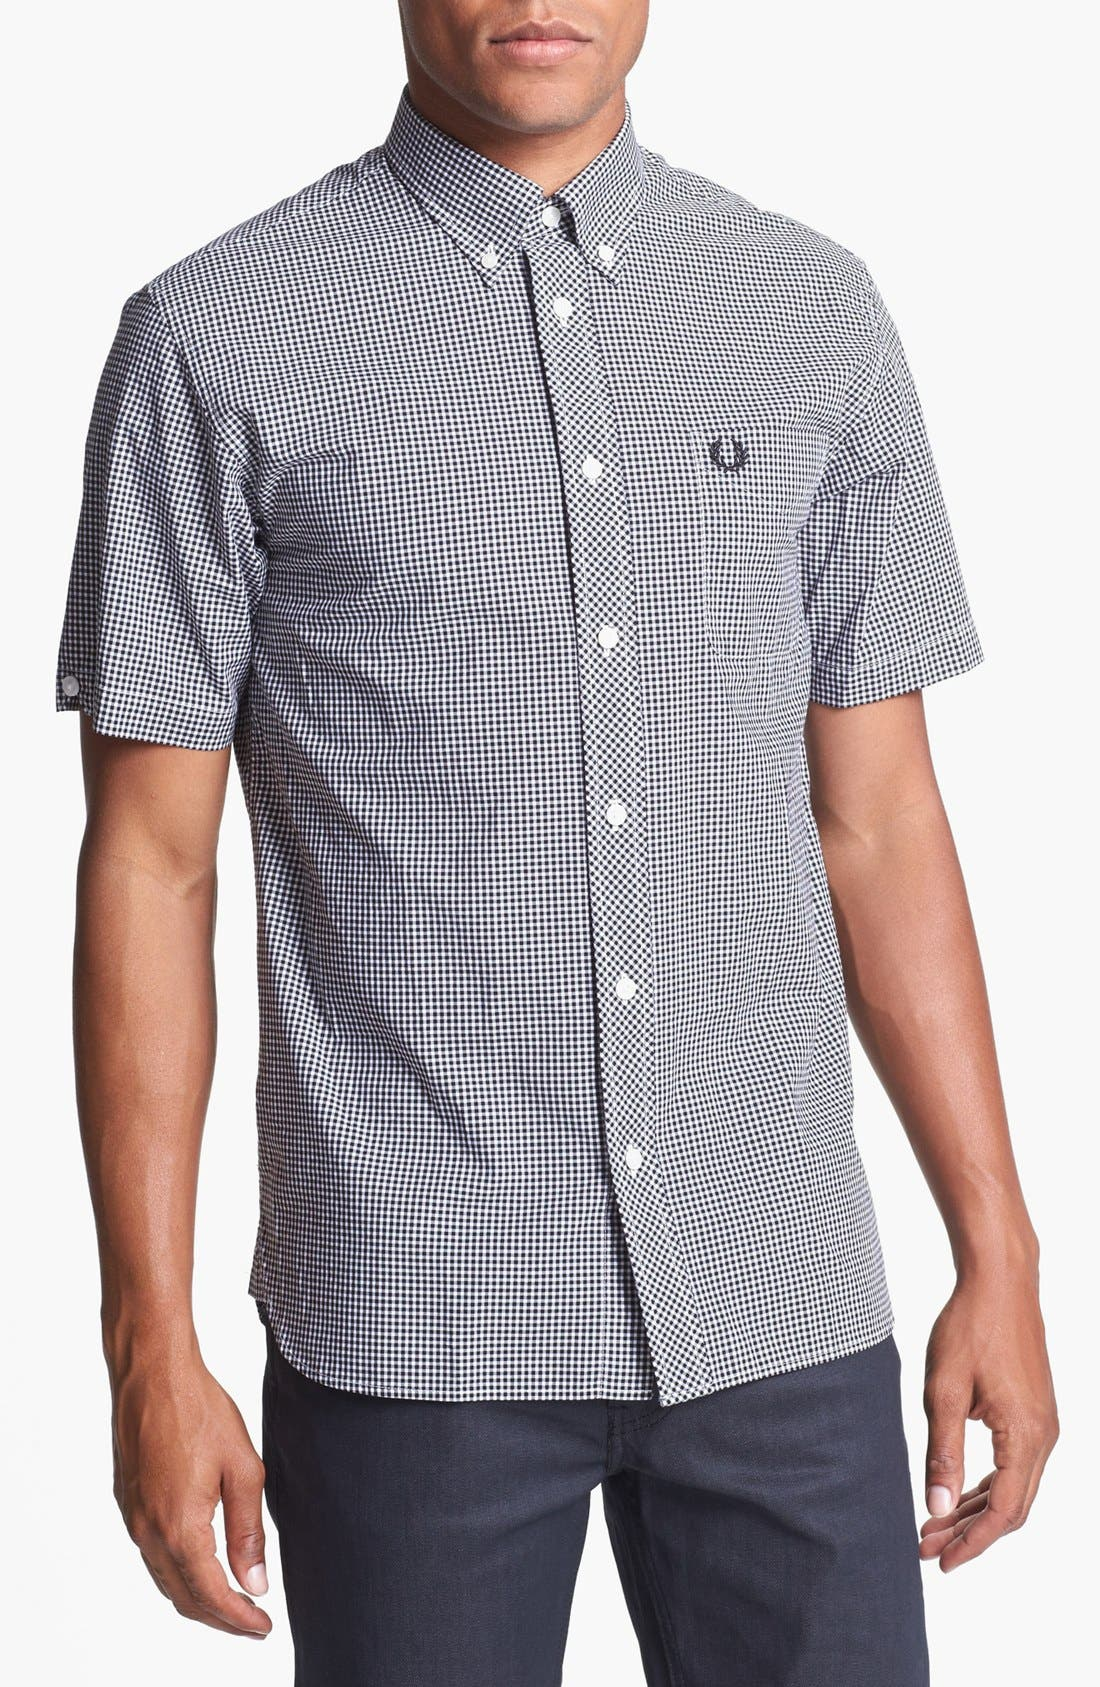 Alternate Image 1 Selected - Fred Perry Gingham Check Shirt